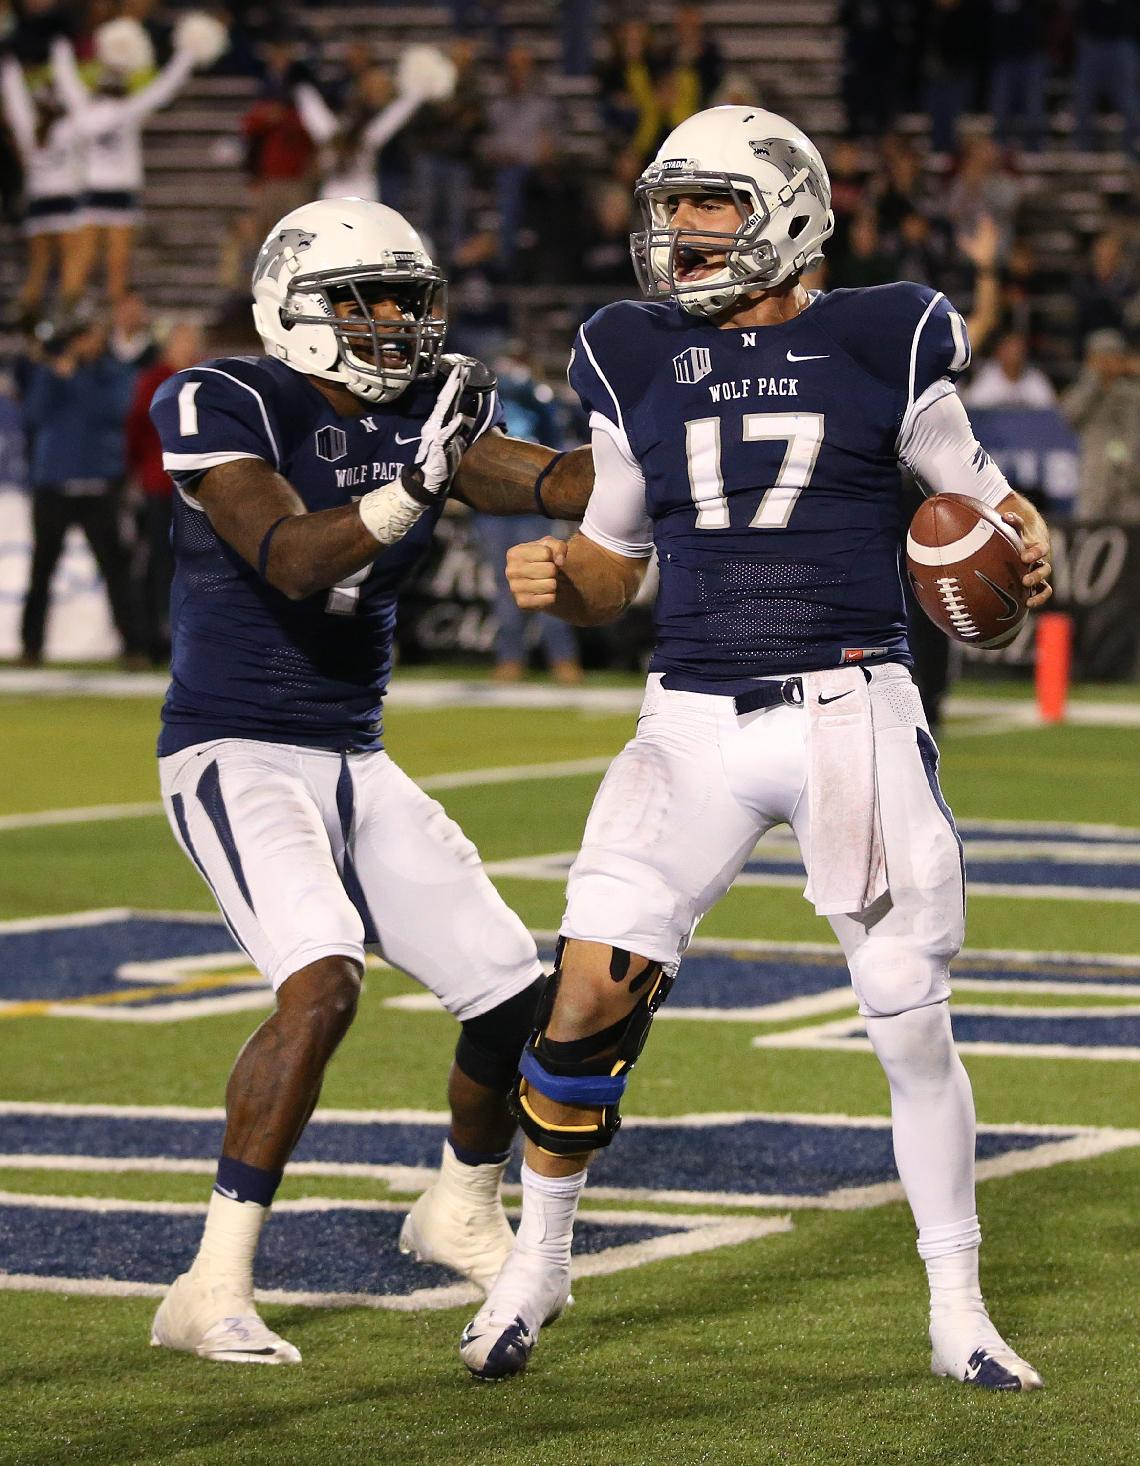 Nevada's Cody Fajardo (17) celebrates with Brandon Wimberly (1) after scoring the game-winning touchdown against Air Force during the second half of an NCAA football game in Reno, Nev., on Saturday, Sept. 28, 2013. Nevada won 45-42